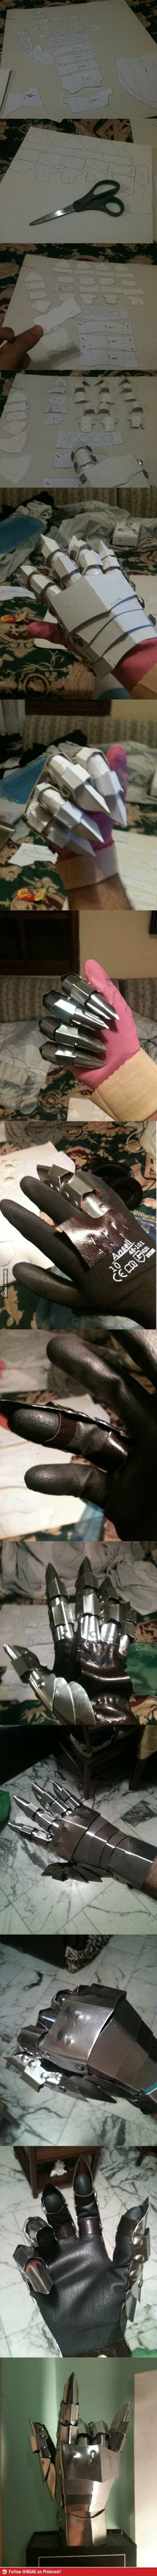 armor gloves diy